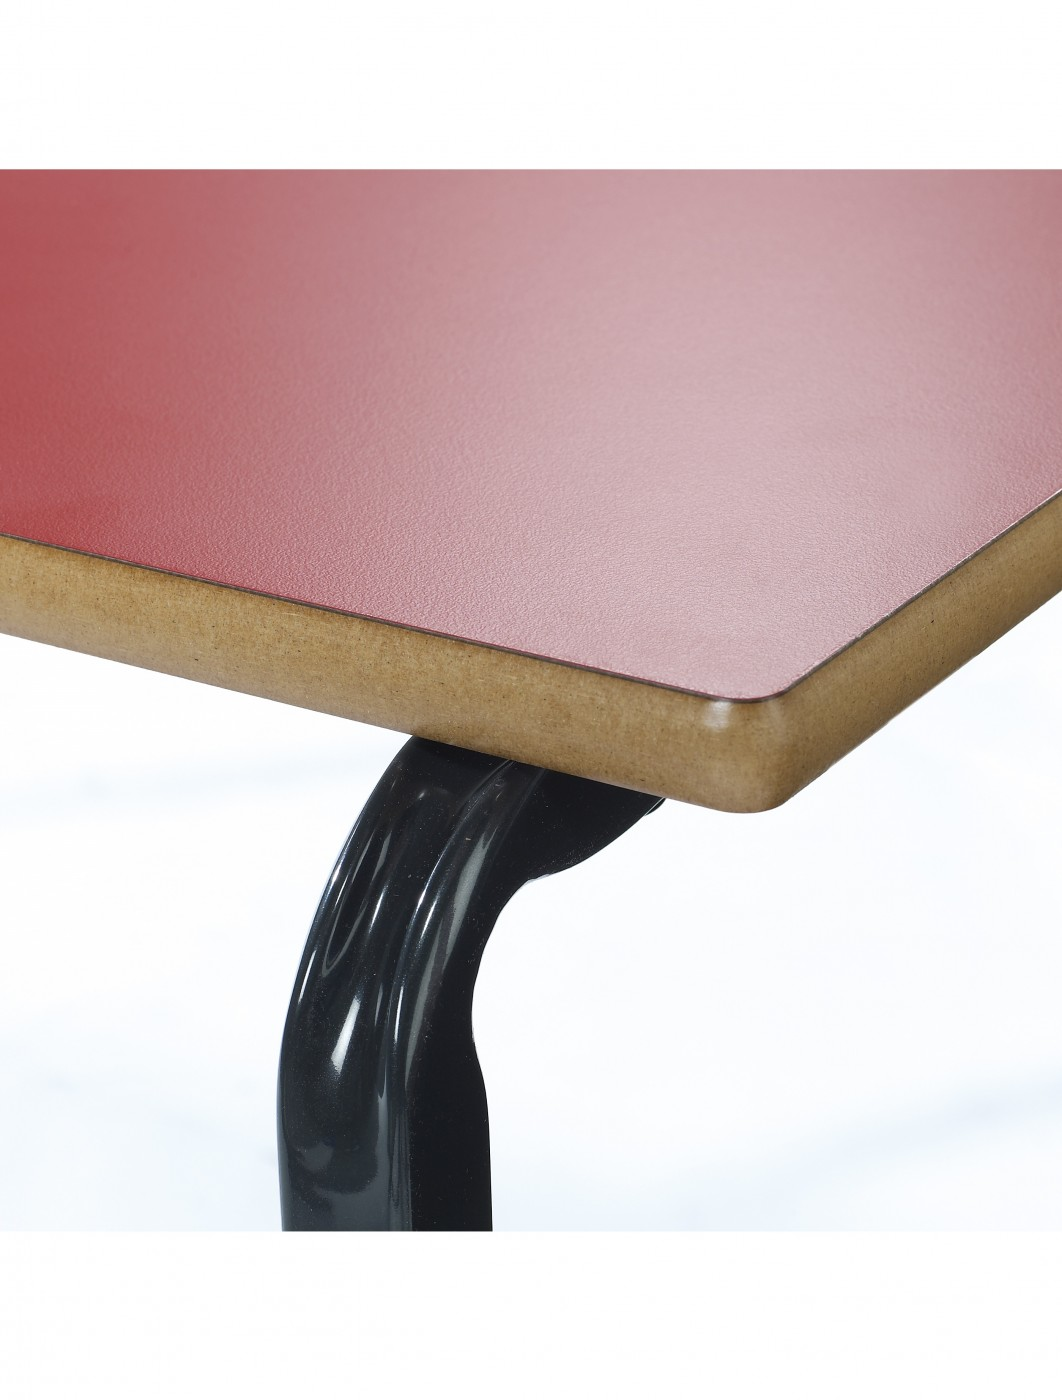 Rectangular Stacking Tables - School Stacking Tables